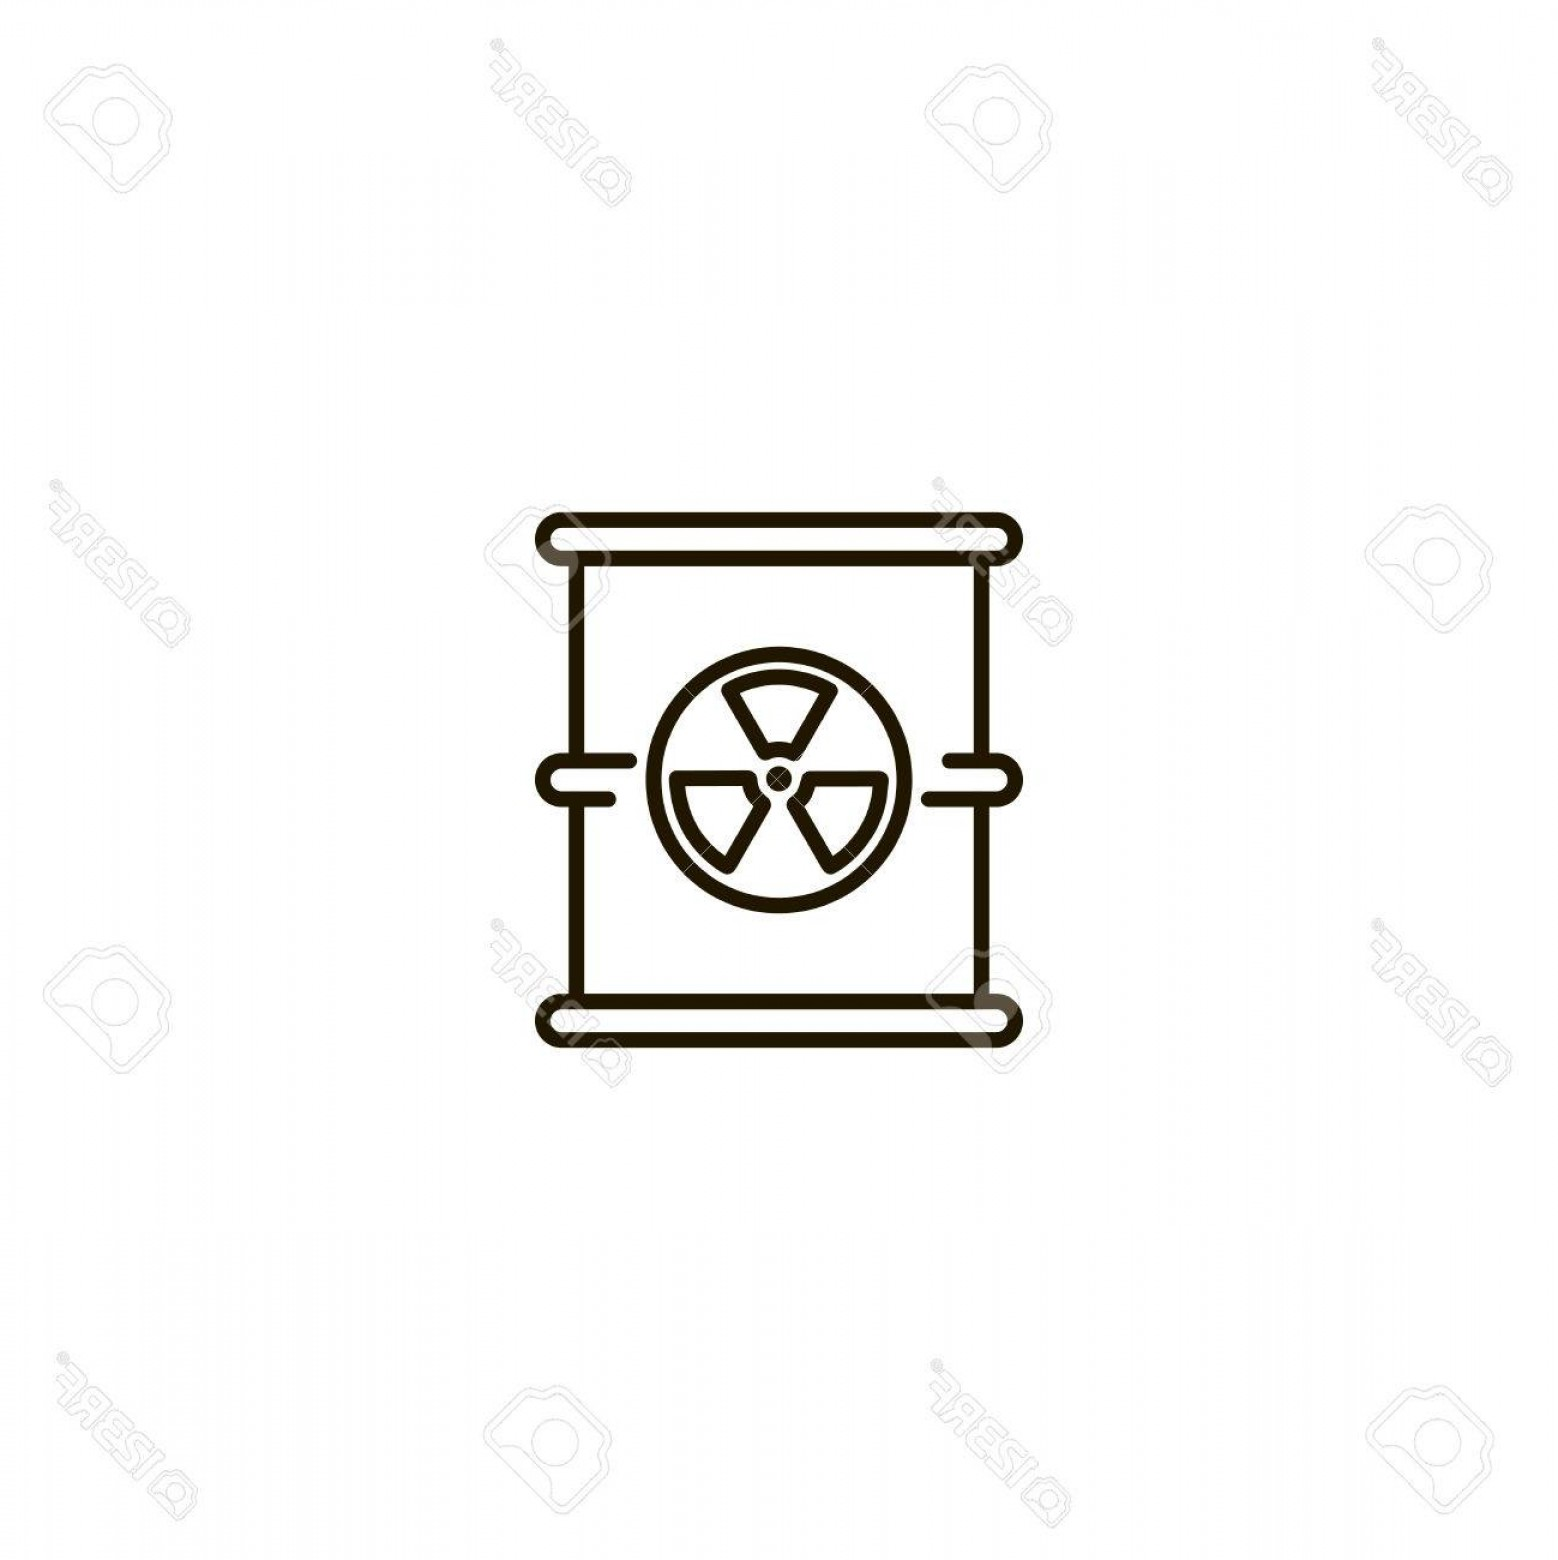 Radioactive Symbol Vector: Photostock Vector Radiation Flat Icon Single High Quality Symbol Of Line Radioactive Vector For Web Design Or Mobile A